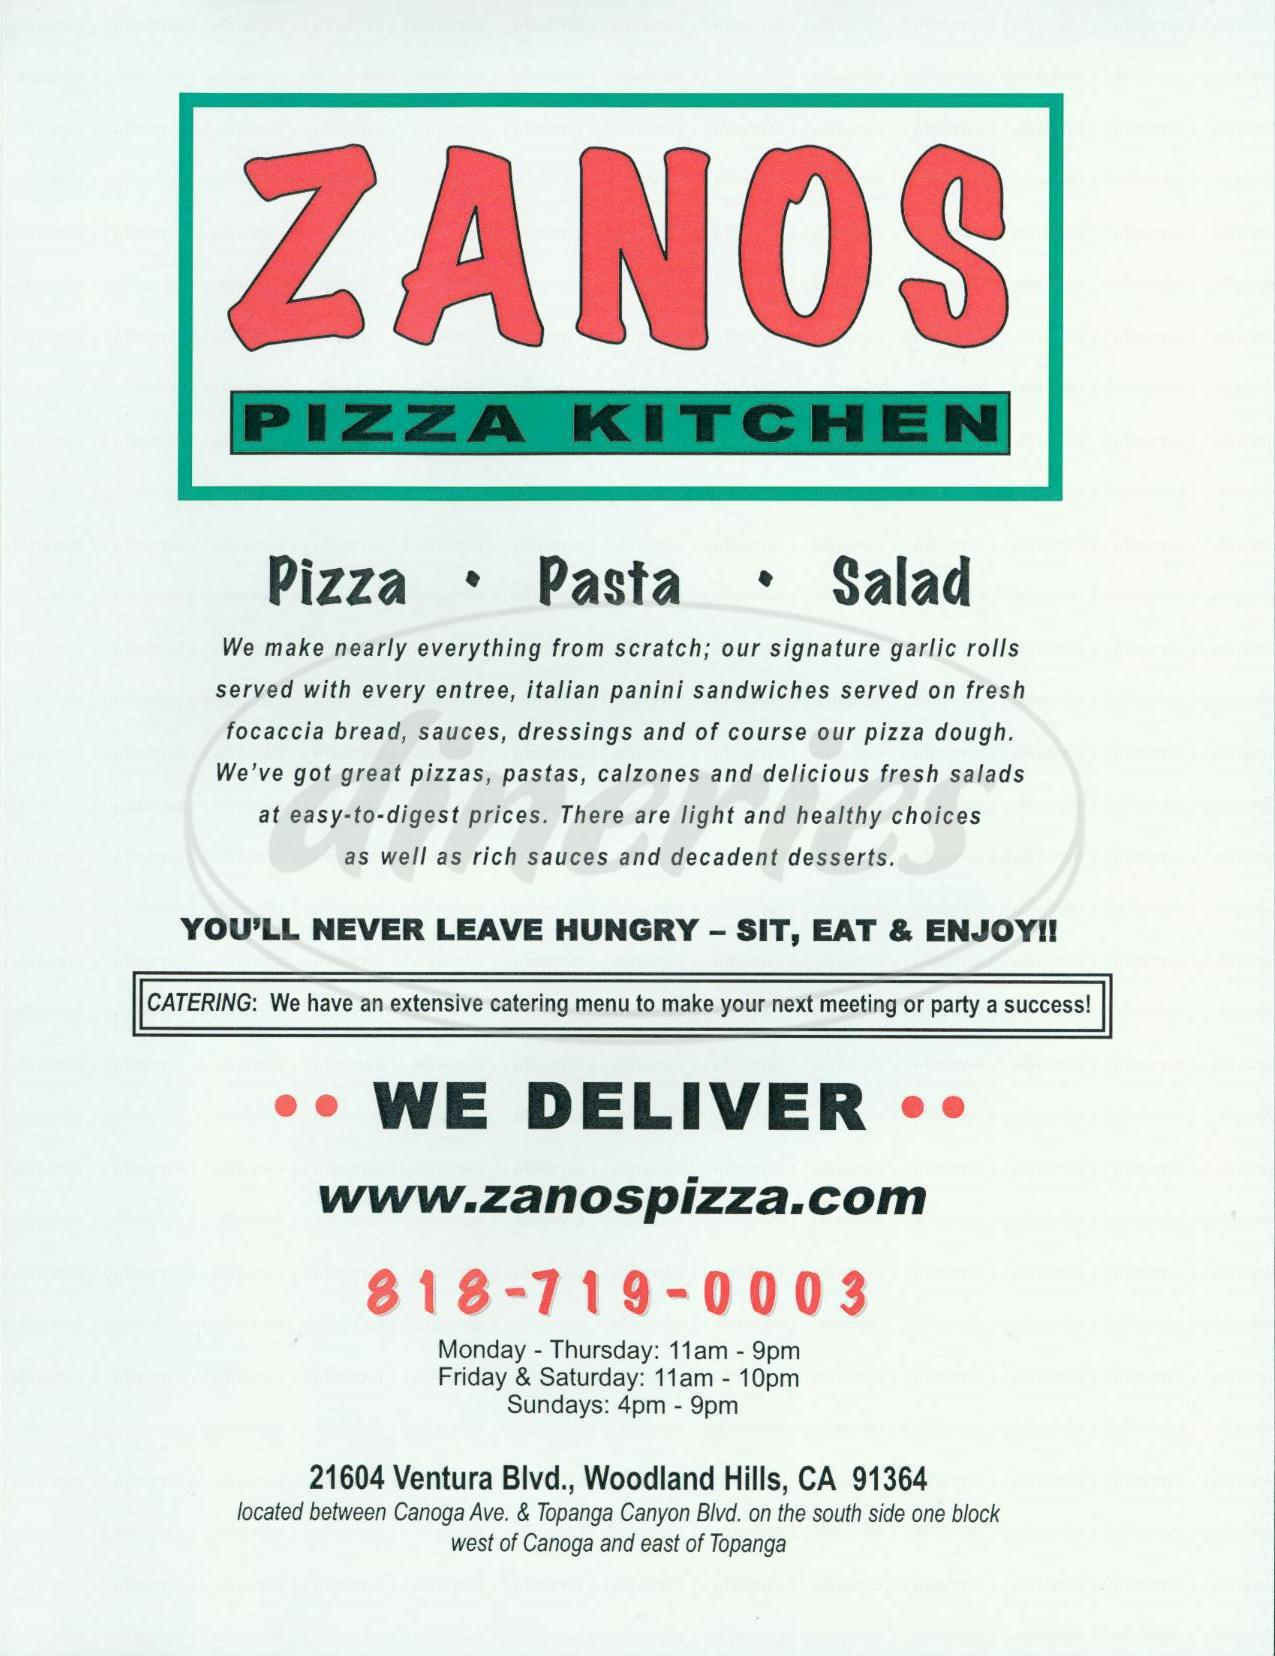 Zanos Pizza Kitchen Menu